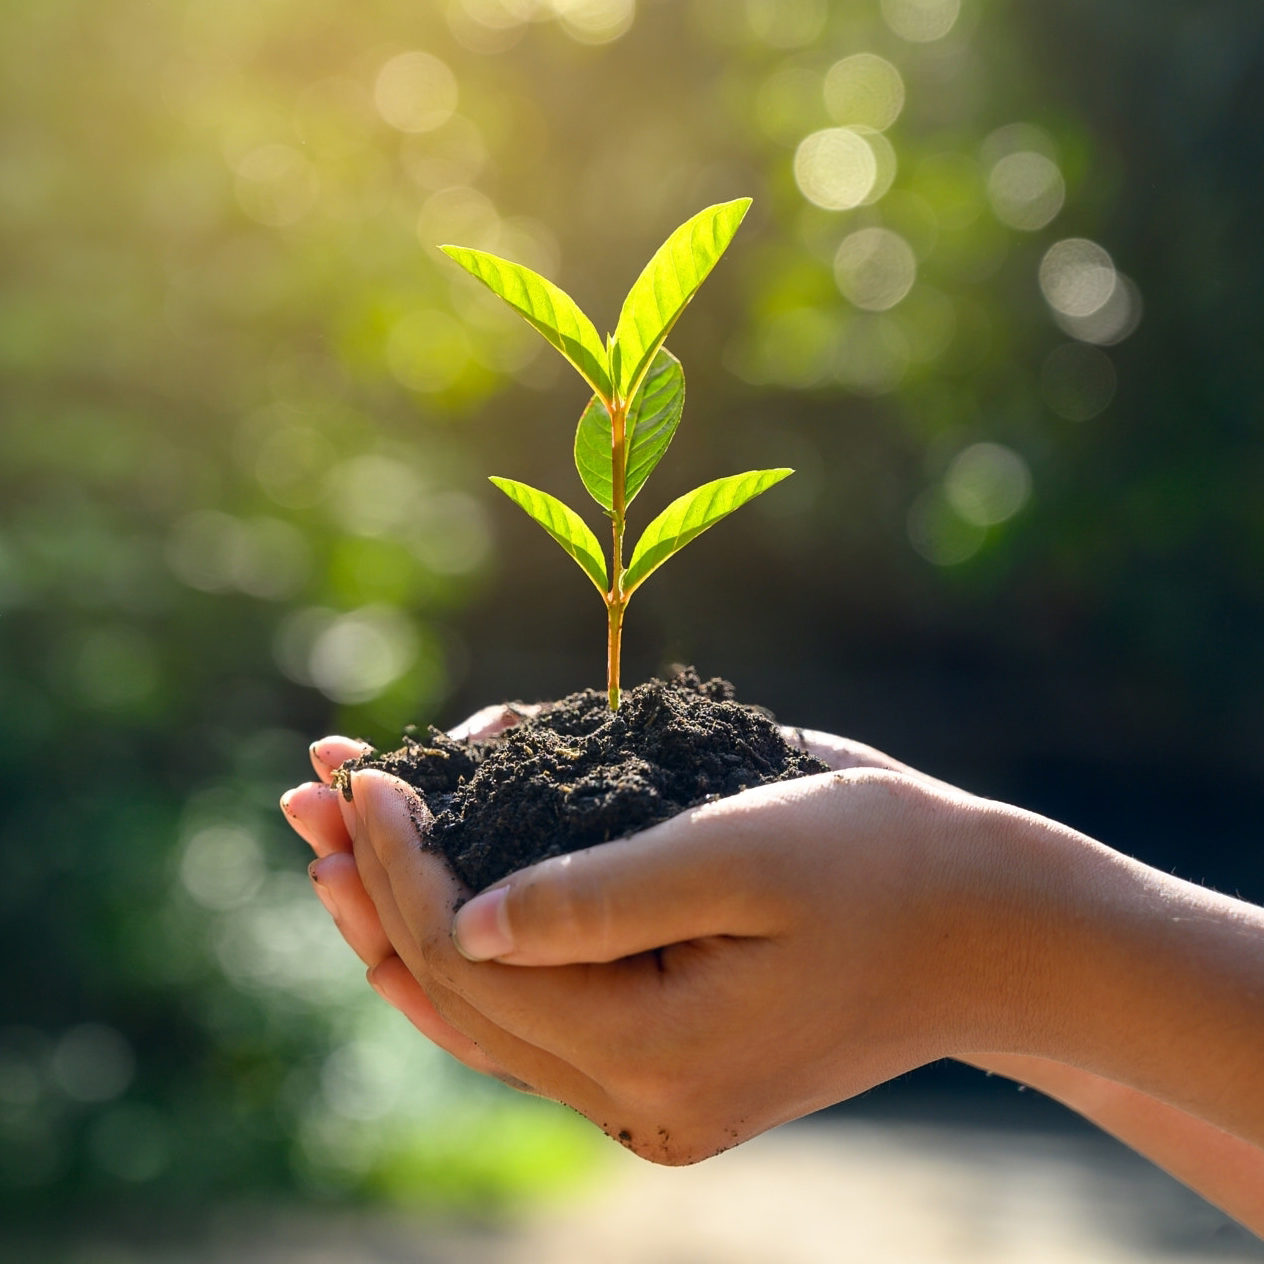 Tree Planting. holding small green tree plant on soil, trees growing seedlings. holding tree on nature grass field. earth day, save environment.